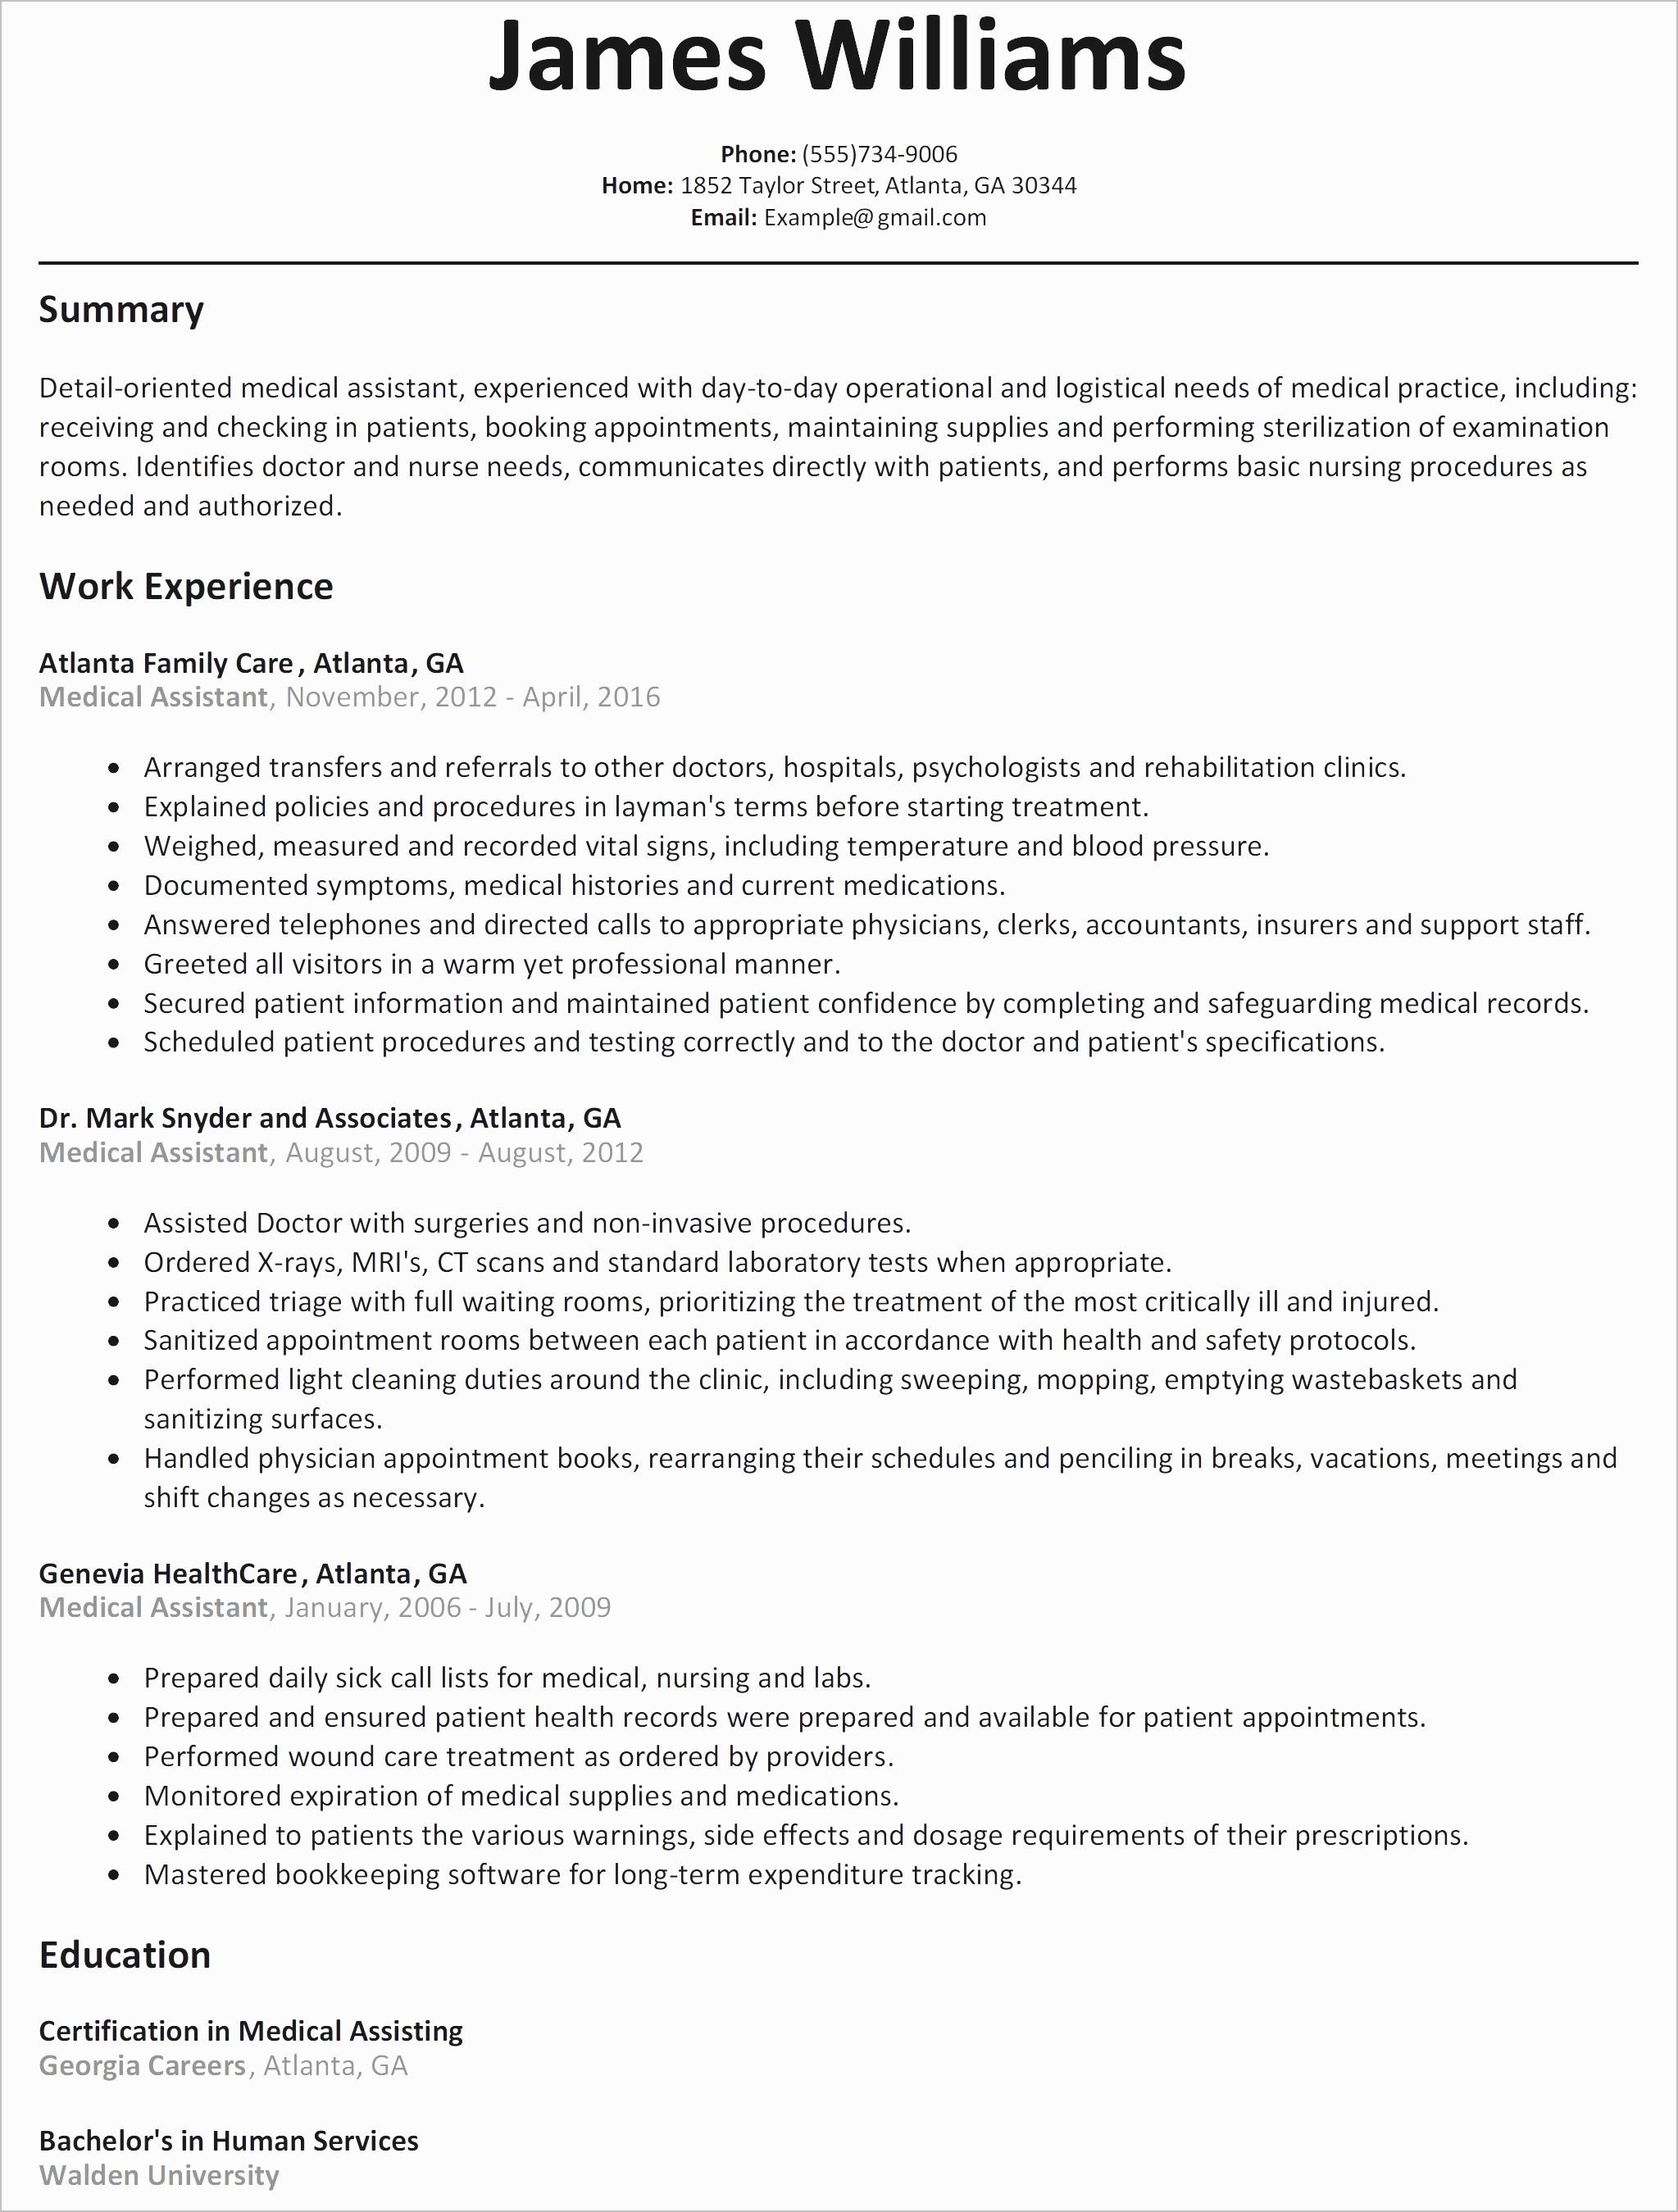 Welder Resume Objective - Sample Resume for Usajobs Unique Job Resume Sample Unique Welder